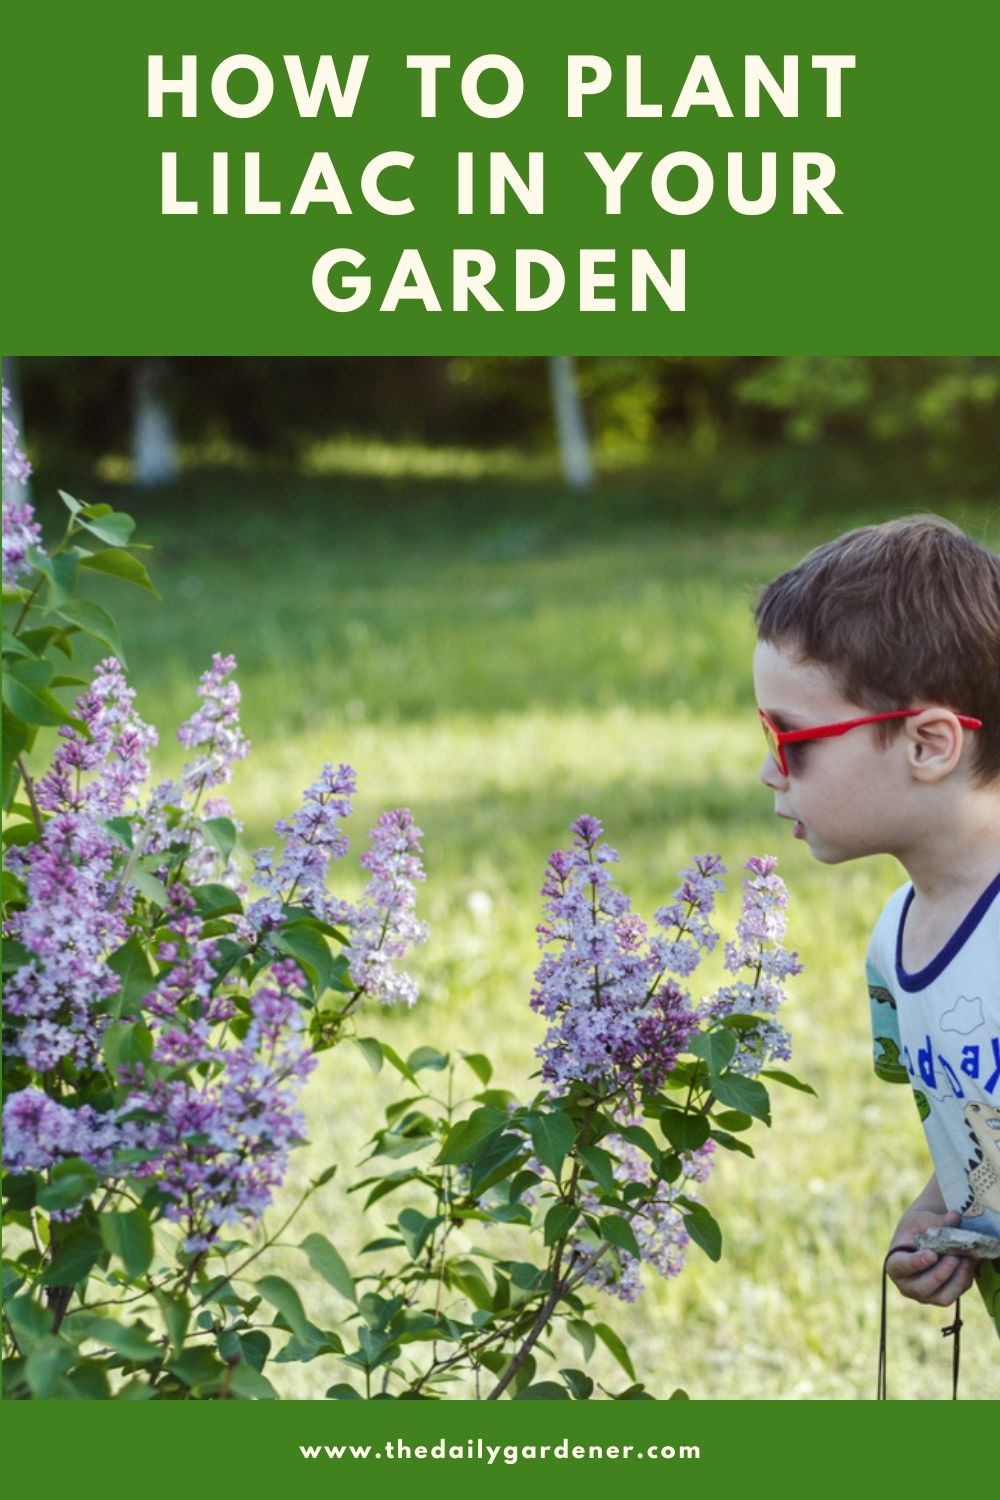 How to Plant Lilac in Your Garden (Tricks to Care!) 1